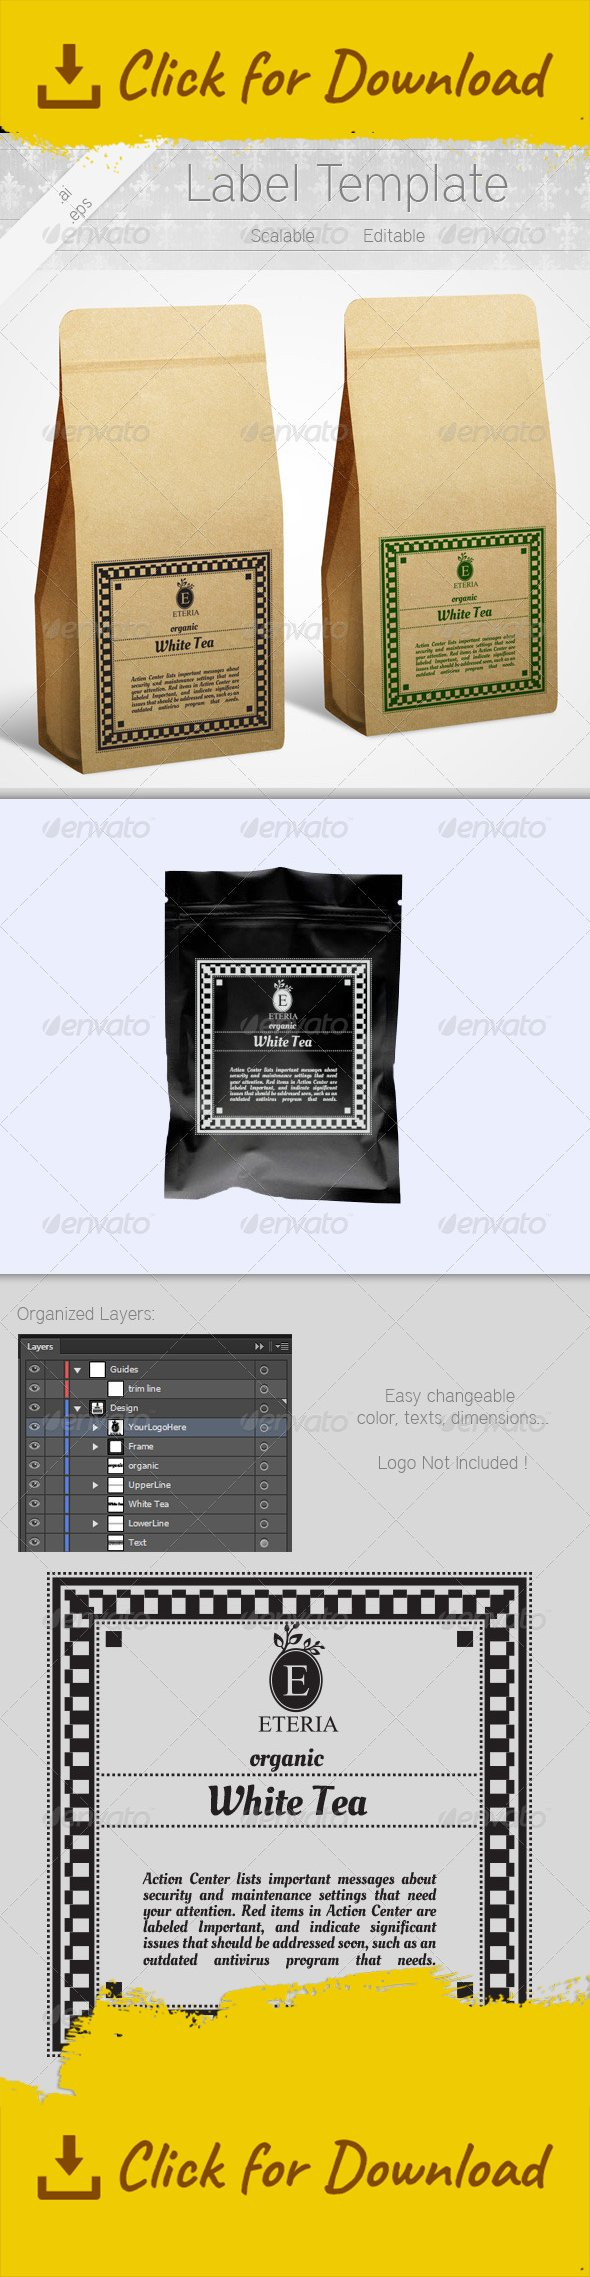 Label Template  Label Templates Product Labels And Template